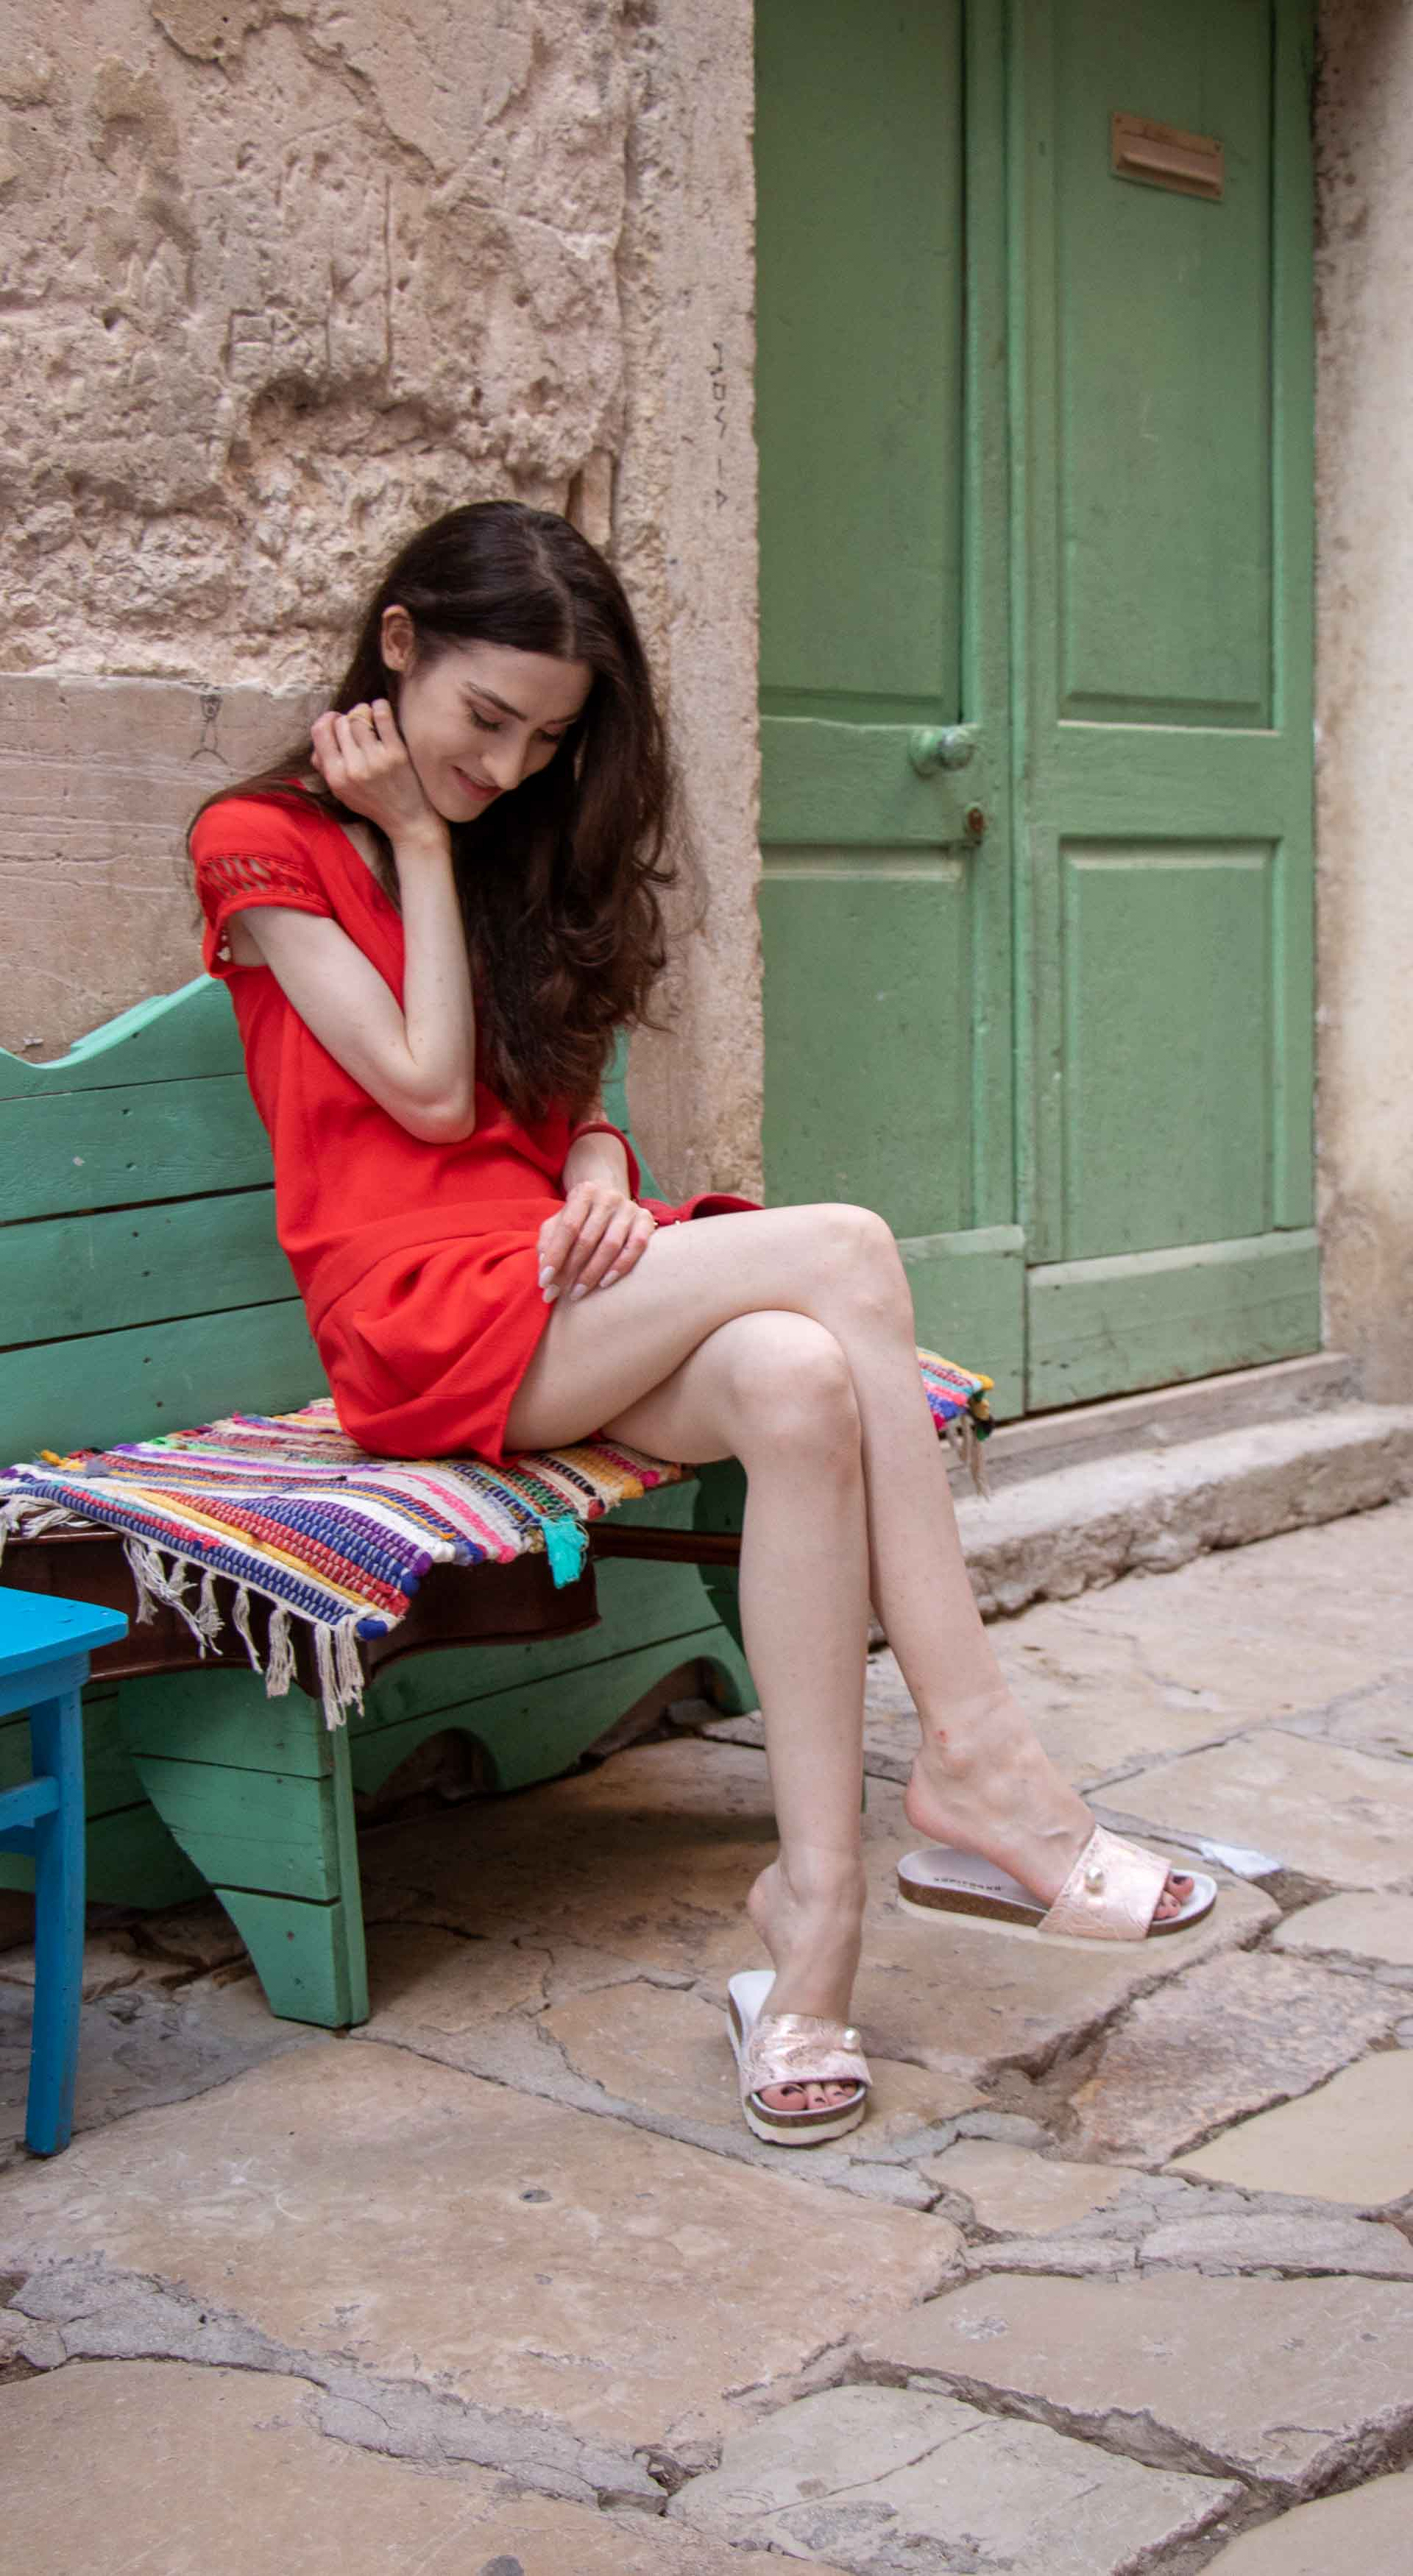 Fashion Blogger Veronika Lipar of Brunette from Wall Street wearing open back chic red romper, crystal-embellished lace luxe pool slides, pink top handle bag while sitting on the bench in Rovinj